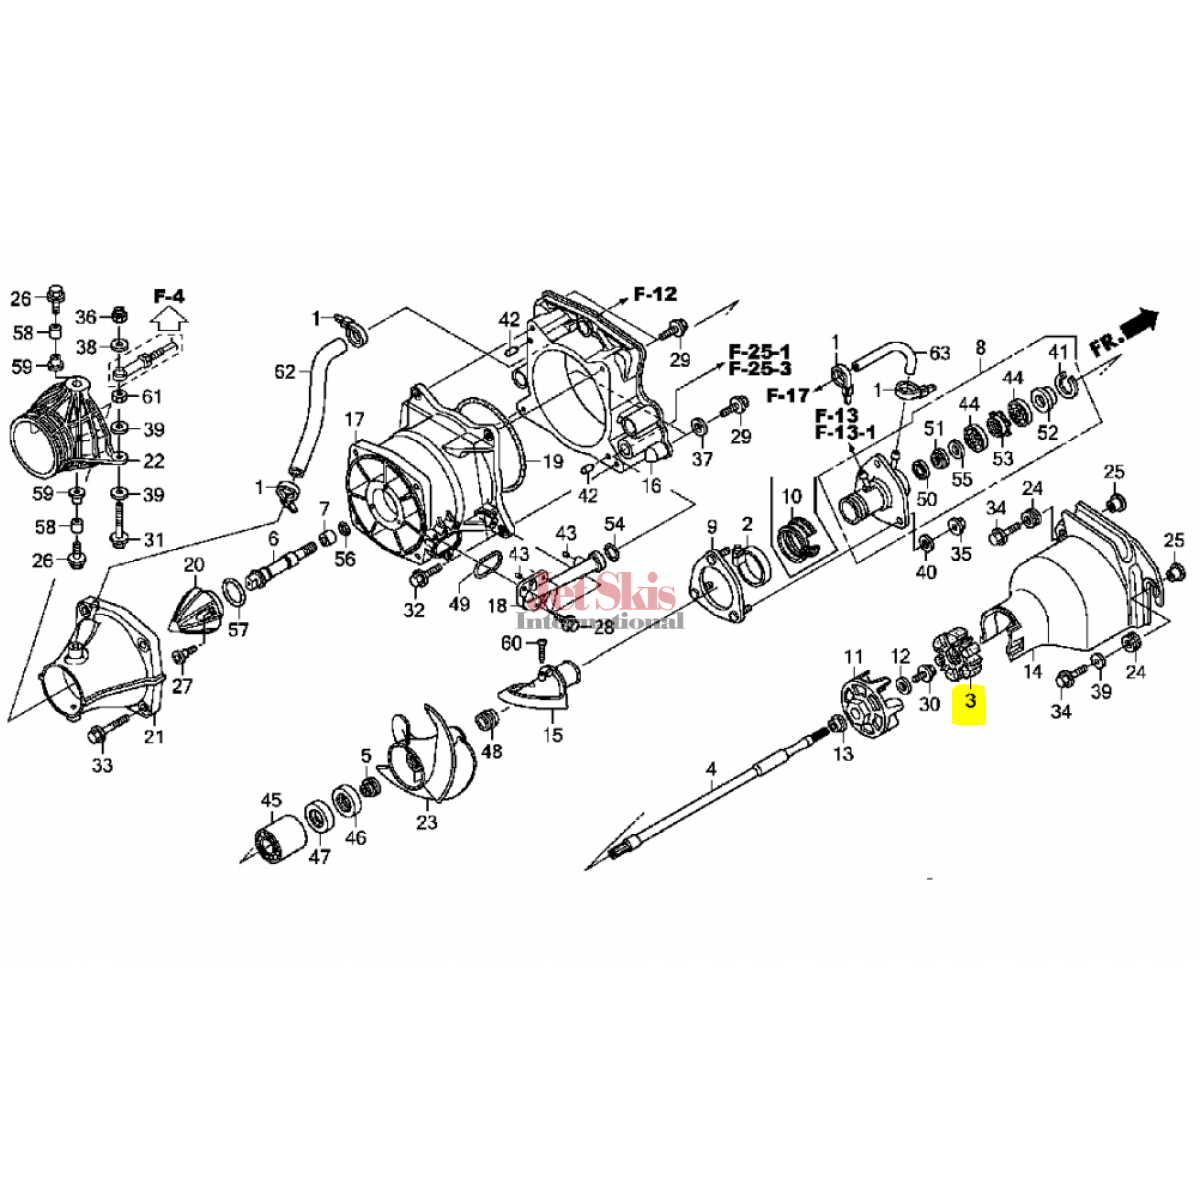 2008 Honda Fit Used Parts Wiring Source Ridgeline Fuse Box Exhaust Diagram Furthermore Grid For A 2007 Ford Ranger 3l Besides